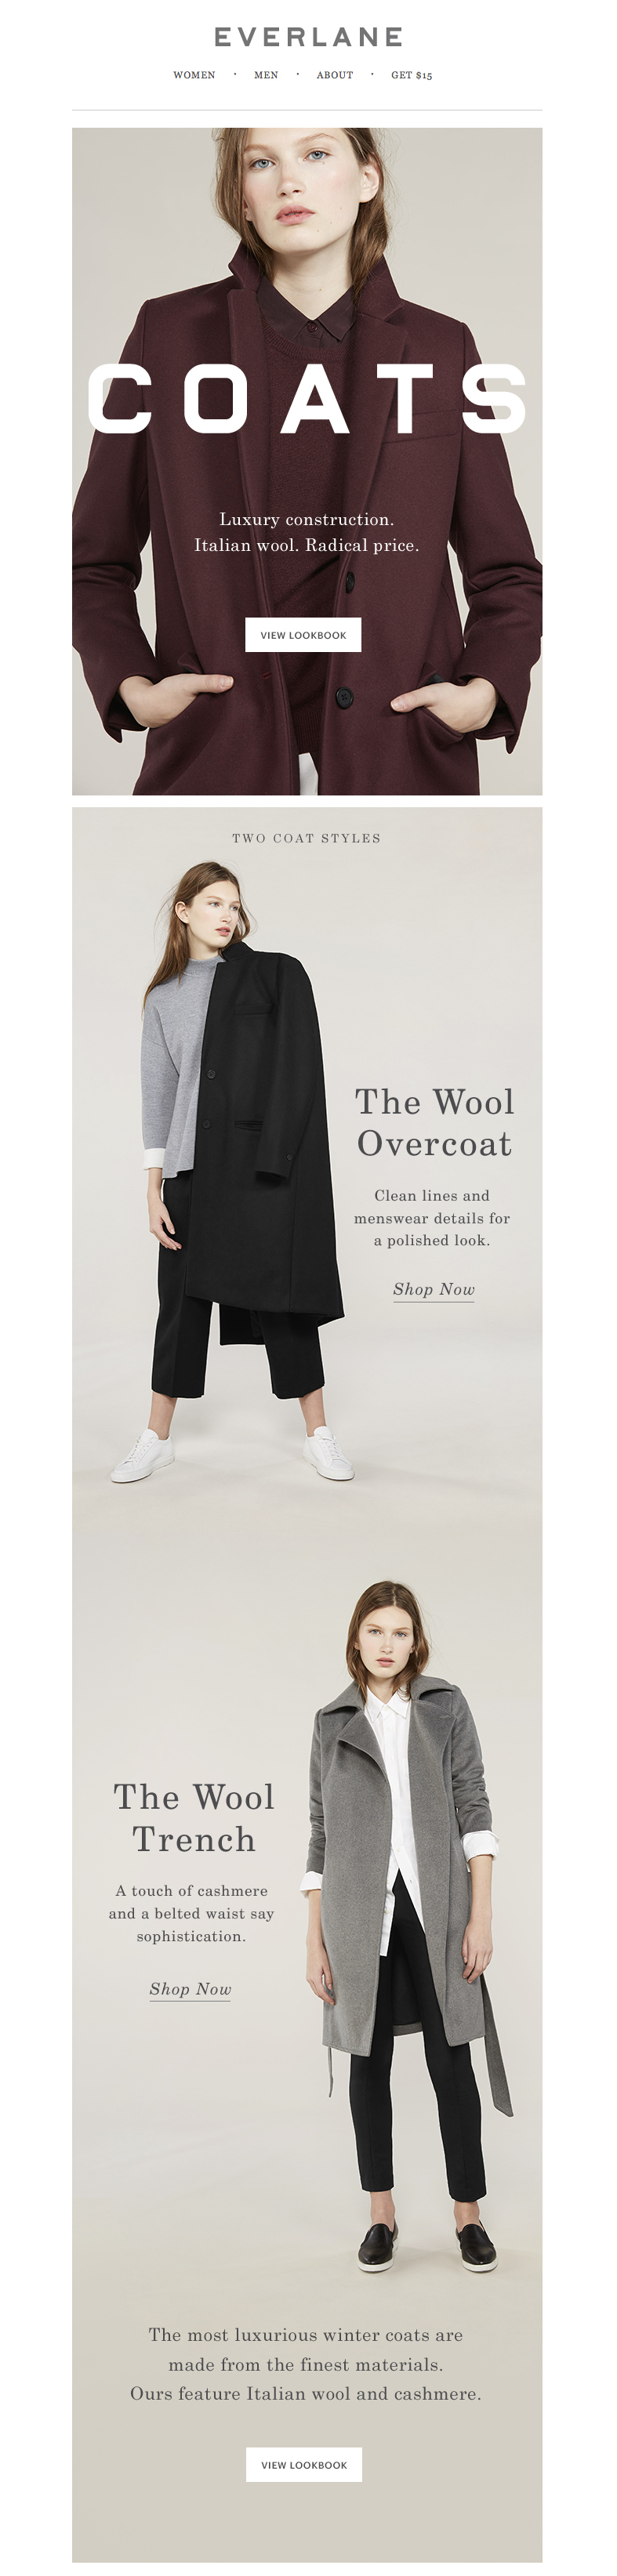 20151103_Wool_Coats_Email_Final.jpg